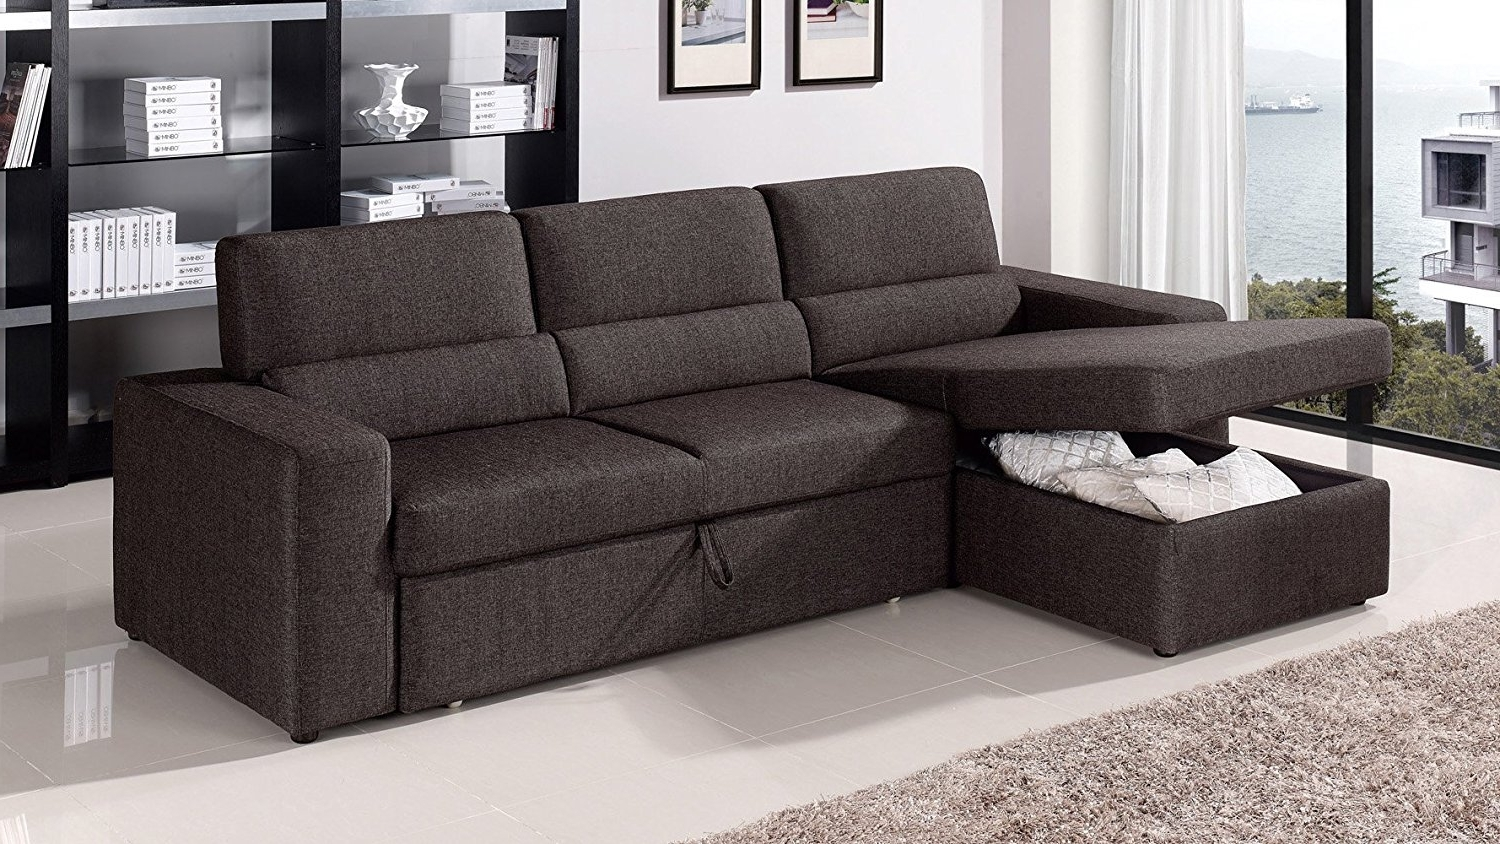 Fashionable Sleeper Sofas With Chaise Within Amazon: Black/brown Clubber Sleeper Sectional Sofa – Left (View 4 of 15)